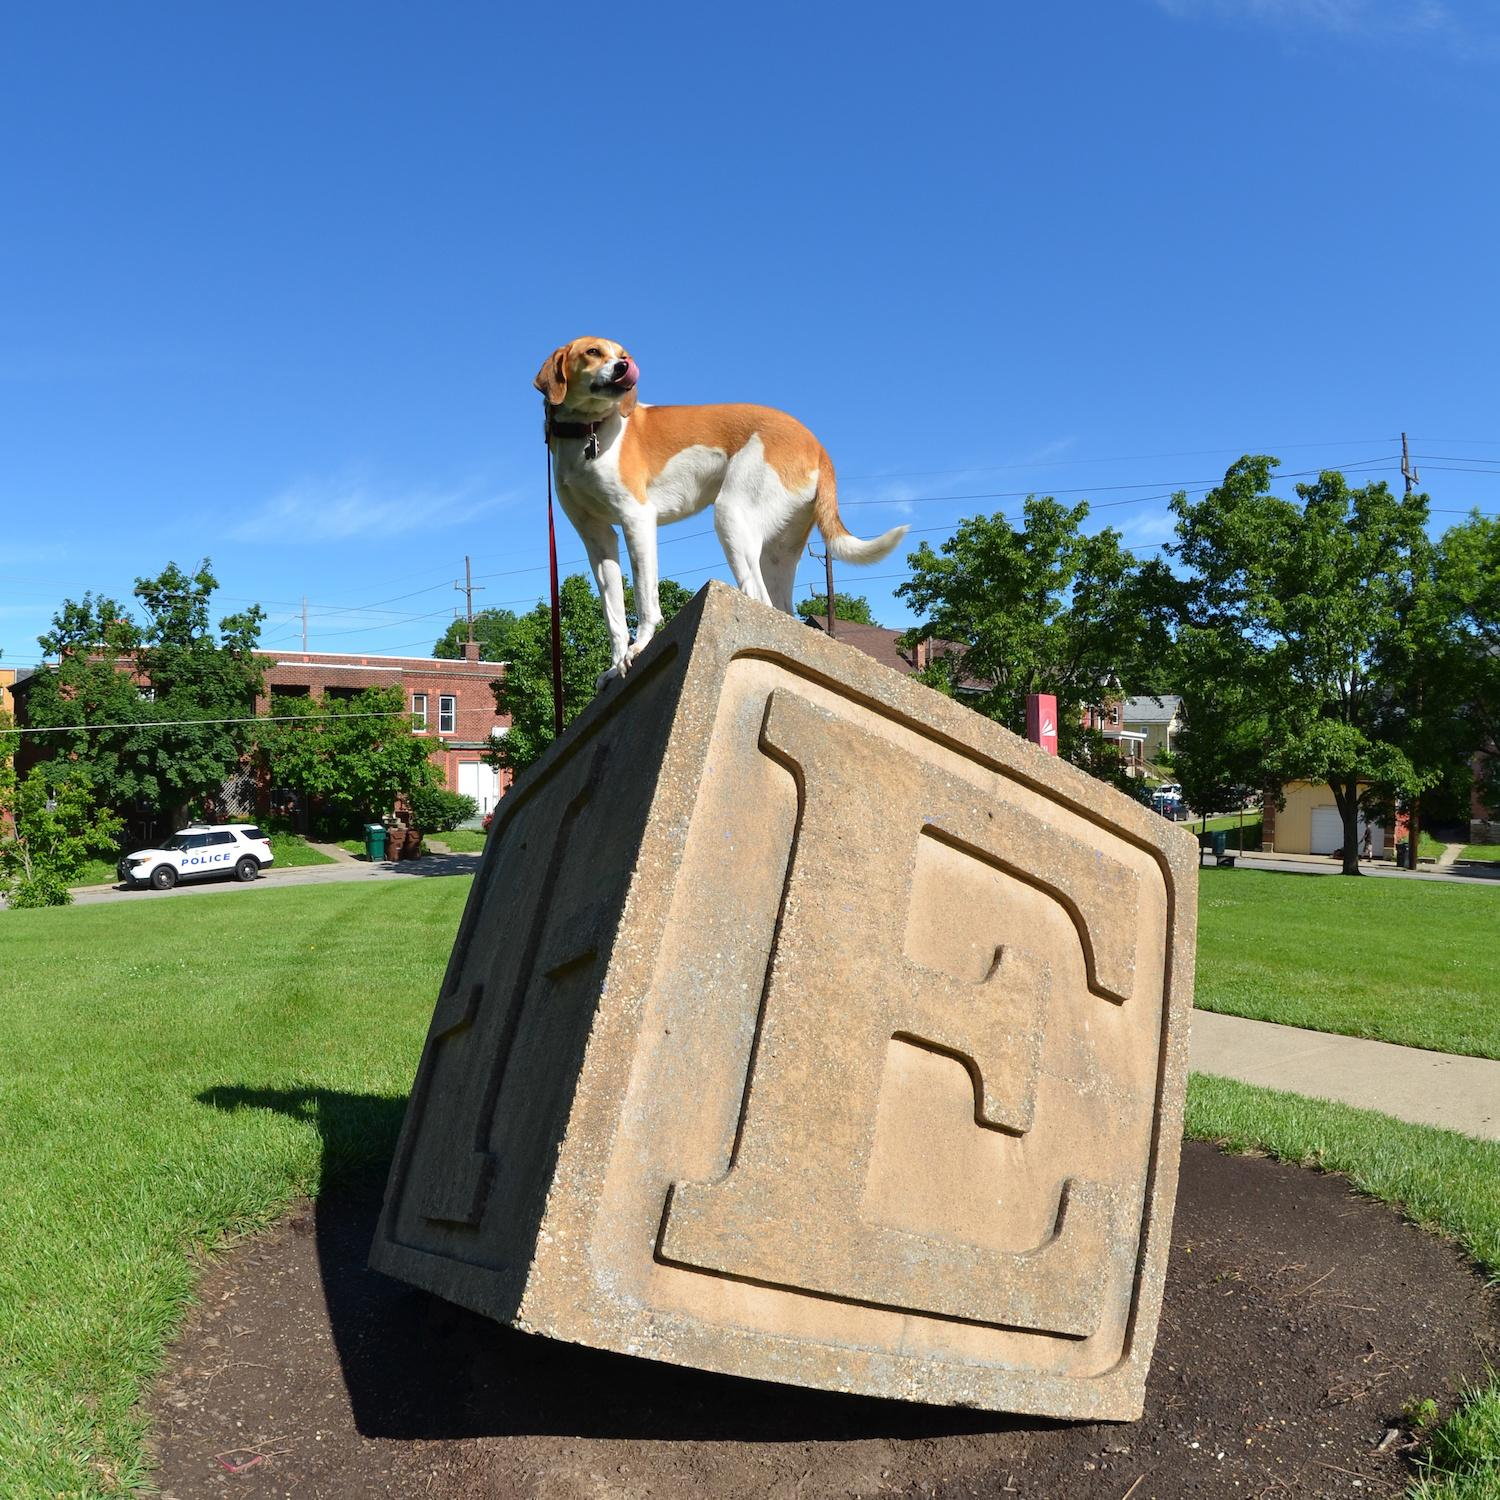 LOCATION: Price Hill Library / Mollie is a local Instagram celebrity. Famous for posing on fire hydrants in front of ArtWorks murals (and other Cincy landmarks), this hound dog has officially stolen our hearts. You can follow her adventures on Instagram @molliethehounddoggie / Image: Patti Mossey (Mollie's owner and #1 fan) // Published: 5.1.18